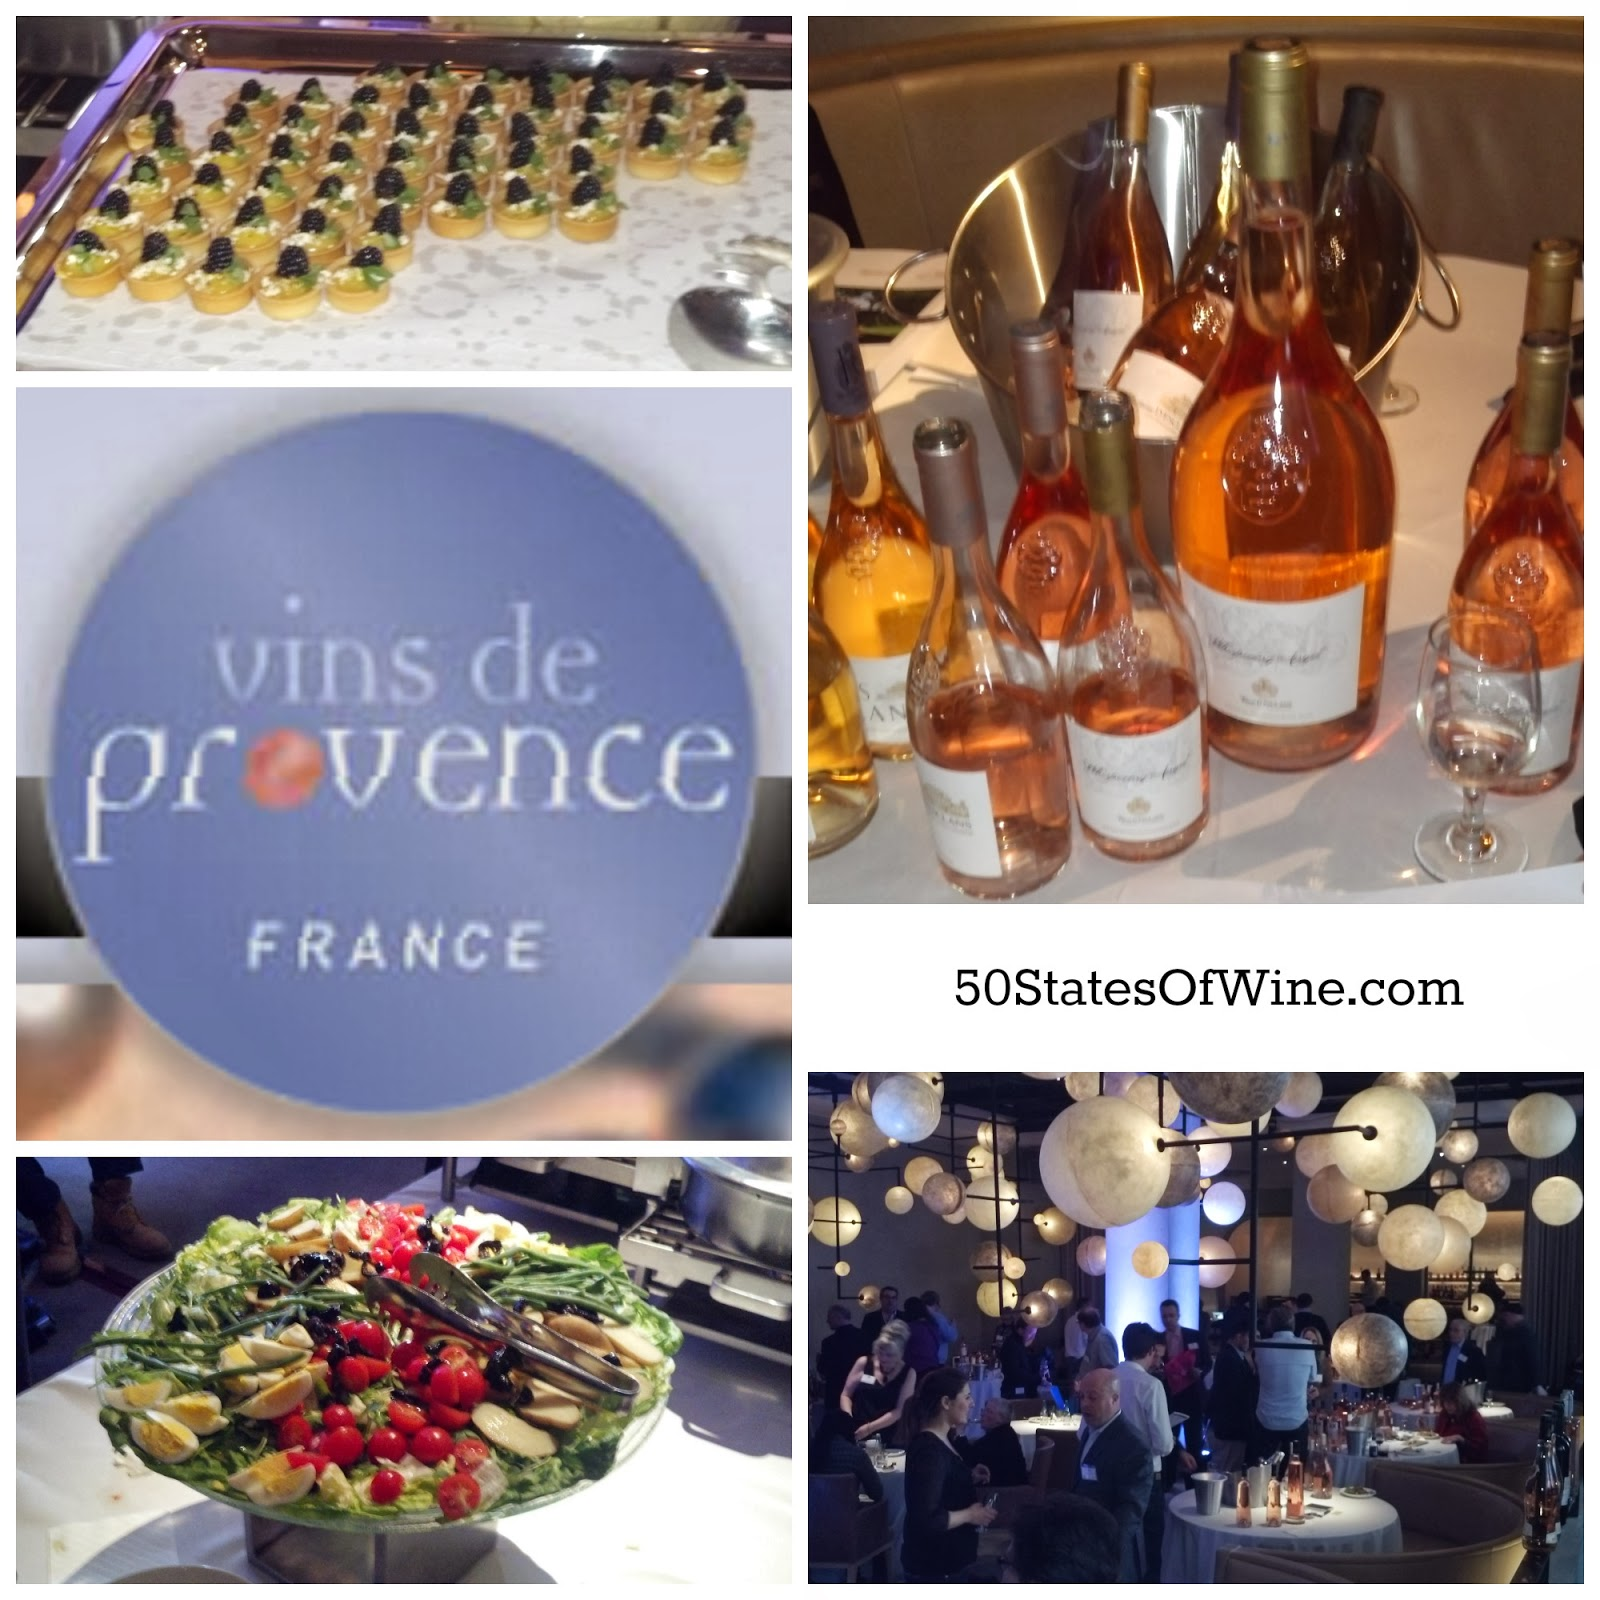 Provence in the City 2014 - Chicago